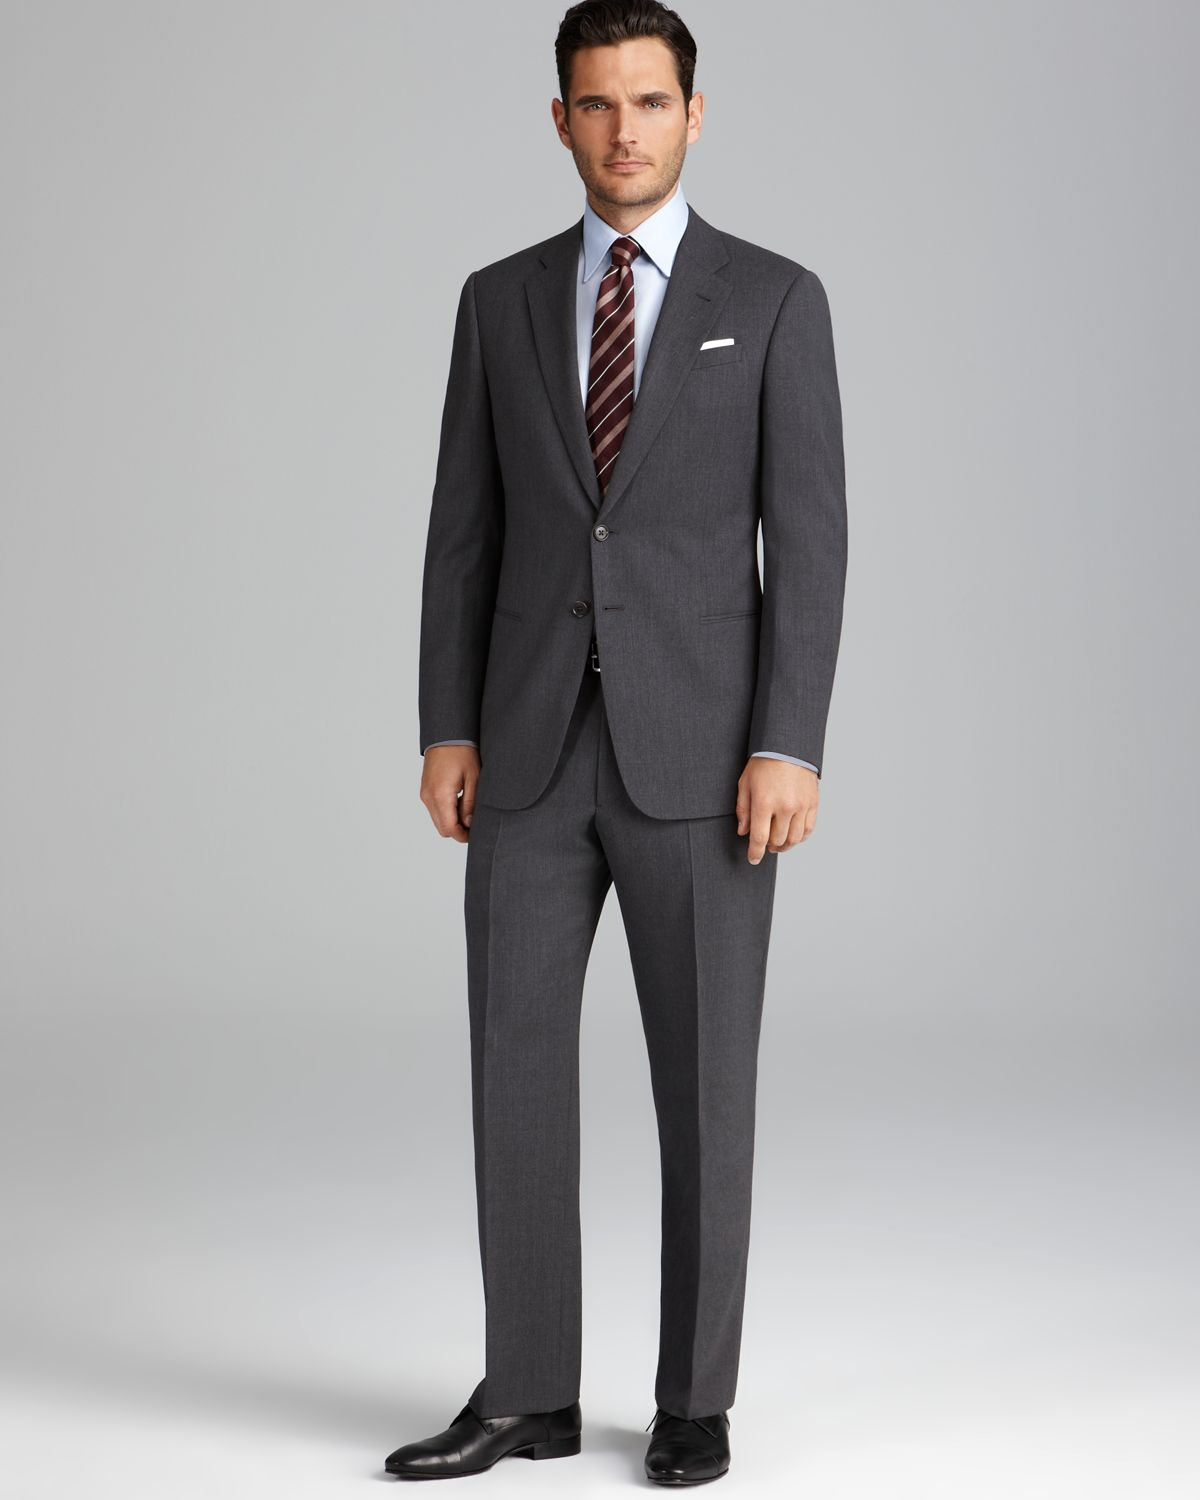 This is part of an ongoing series on how to find quality bargains so you can be a thrifty gent, too. Part 1, on thrift stores, is here.. As I mentioned, when you're hunting for bargains in a thrift store, it's a good idea to start with suits/sportcoats and shoes.